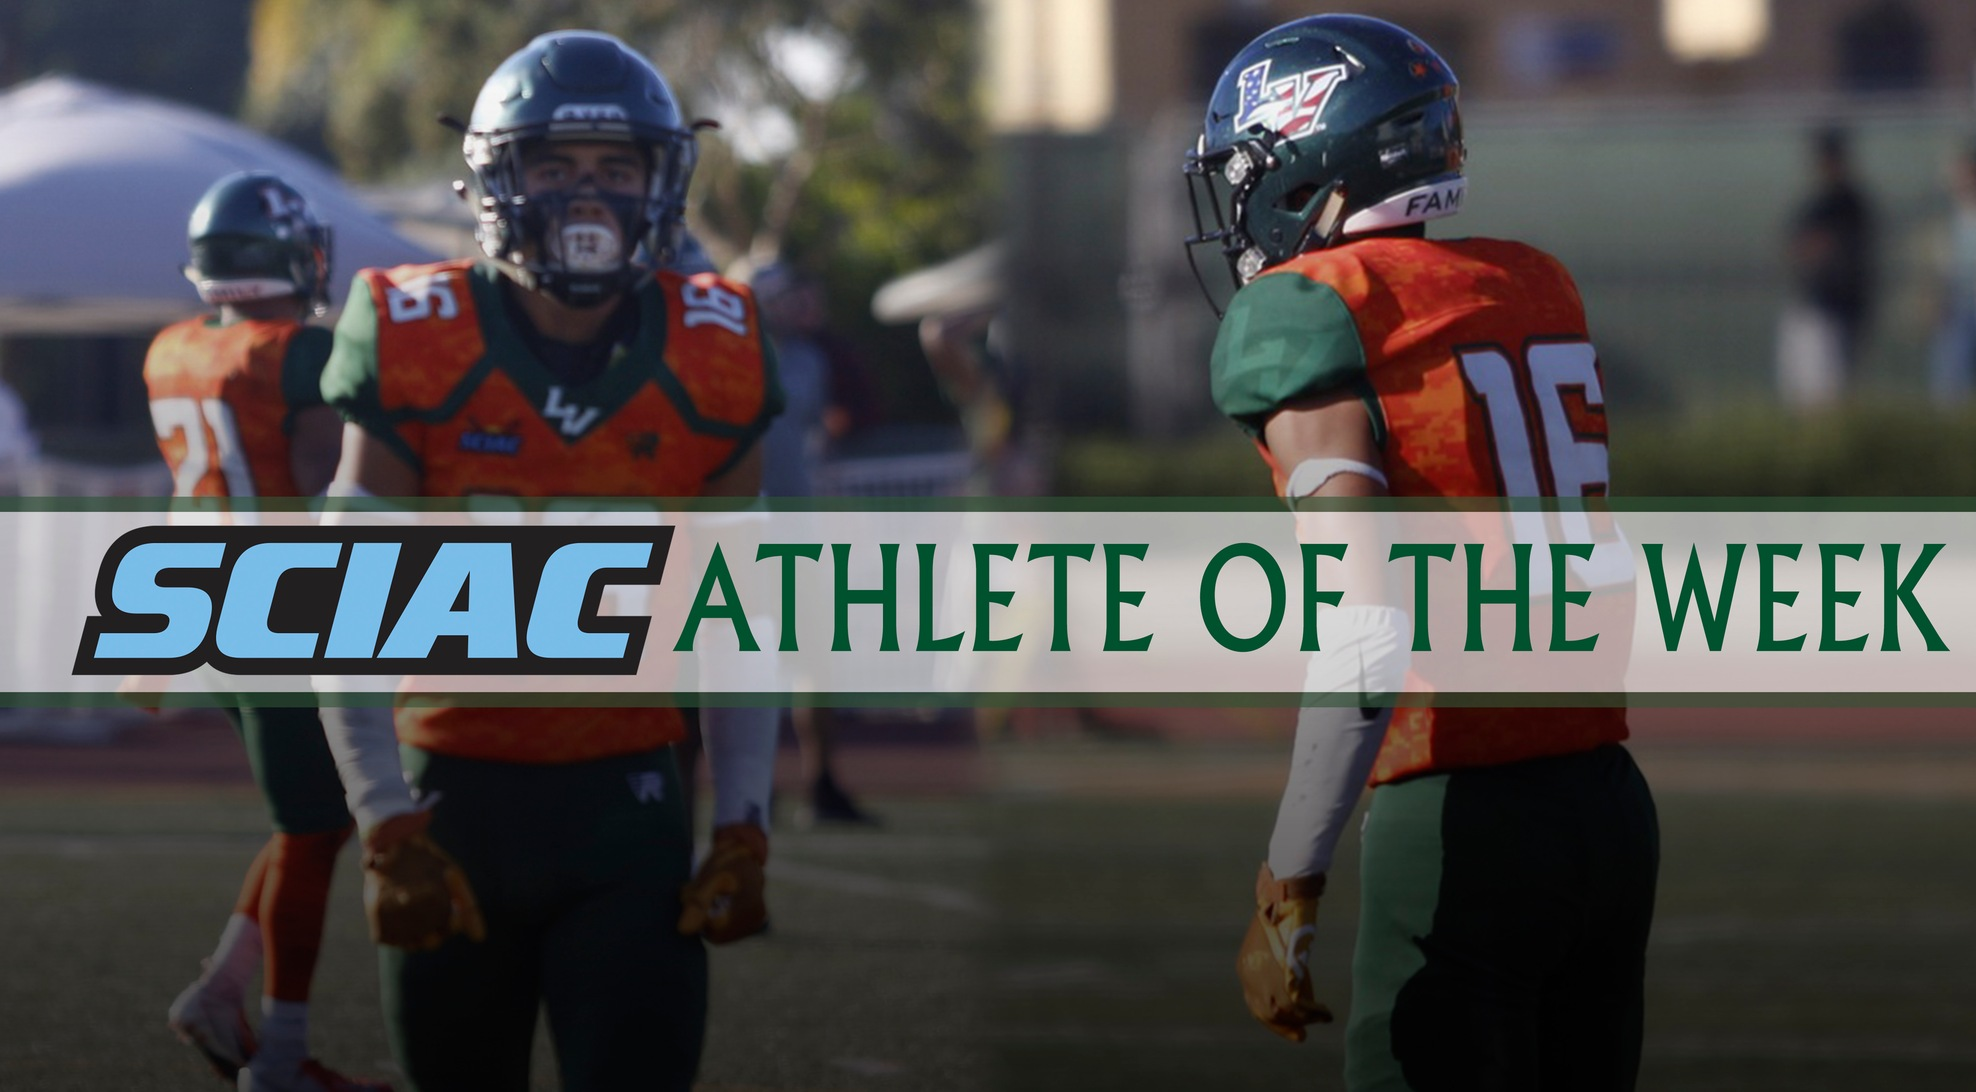 Moronez Named Back-to-Back SCIAC Athlete of the Week